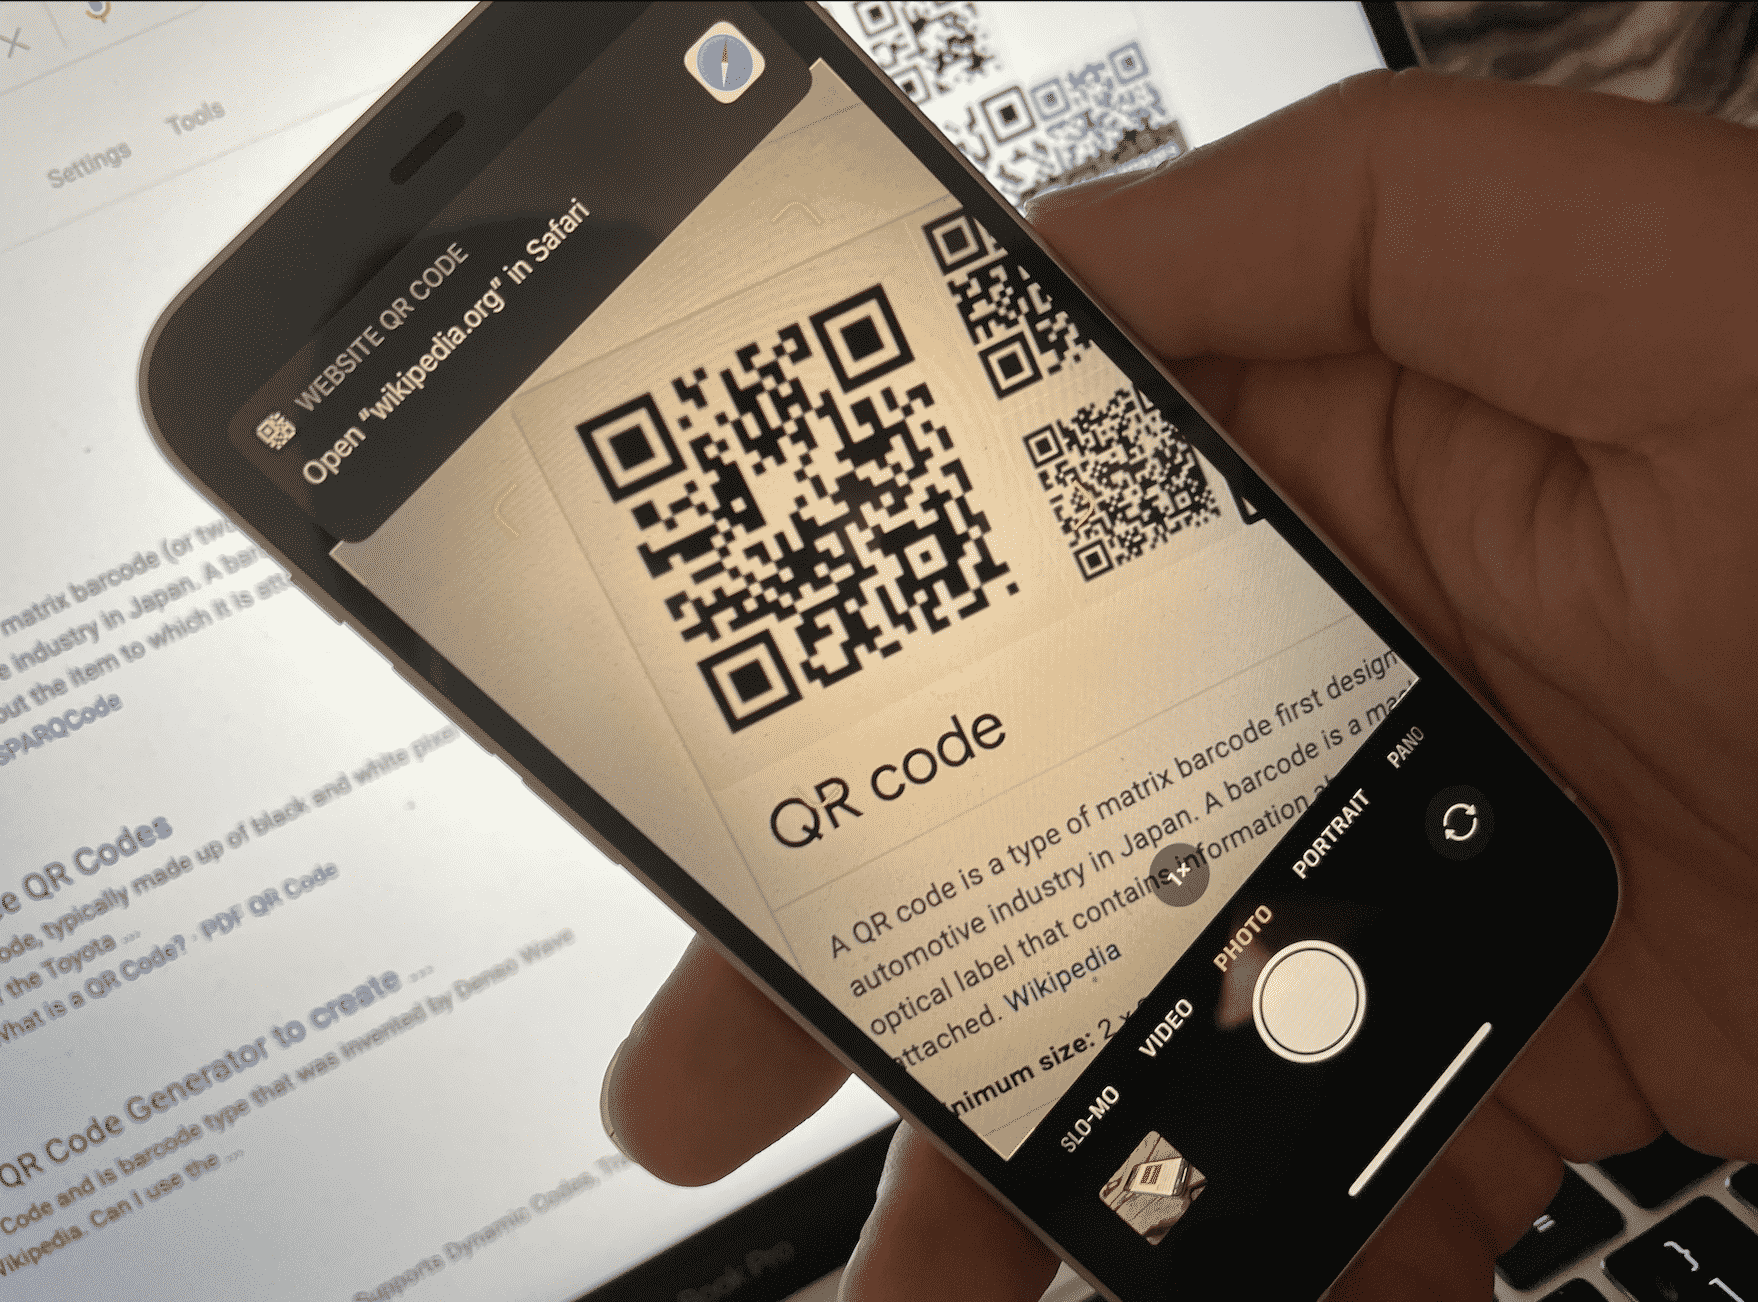 QR scan on iPhone